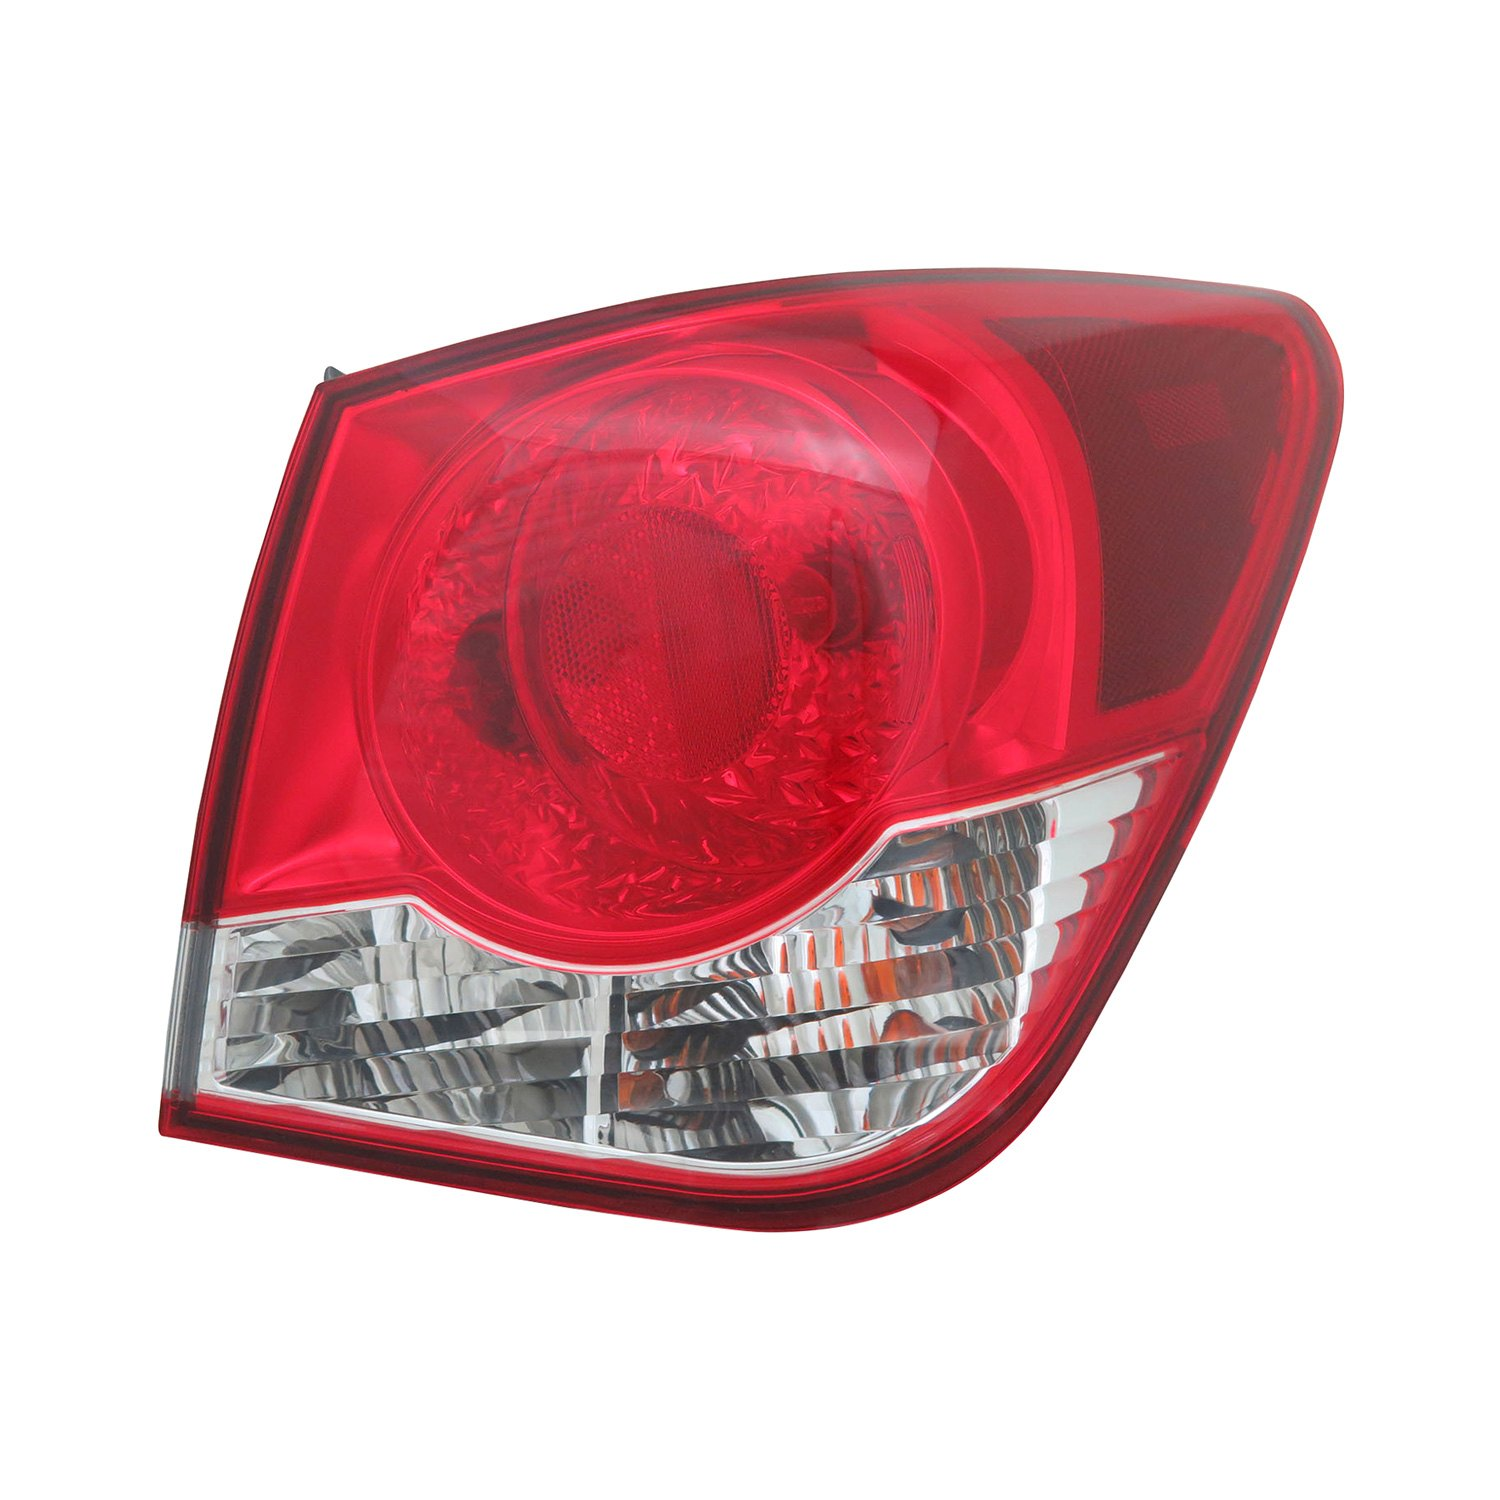 TYC 11 6357 00 1 Passenger Side Outer Replacement Tail Light